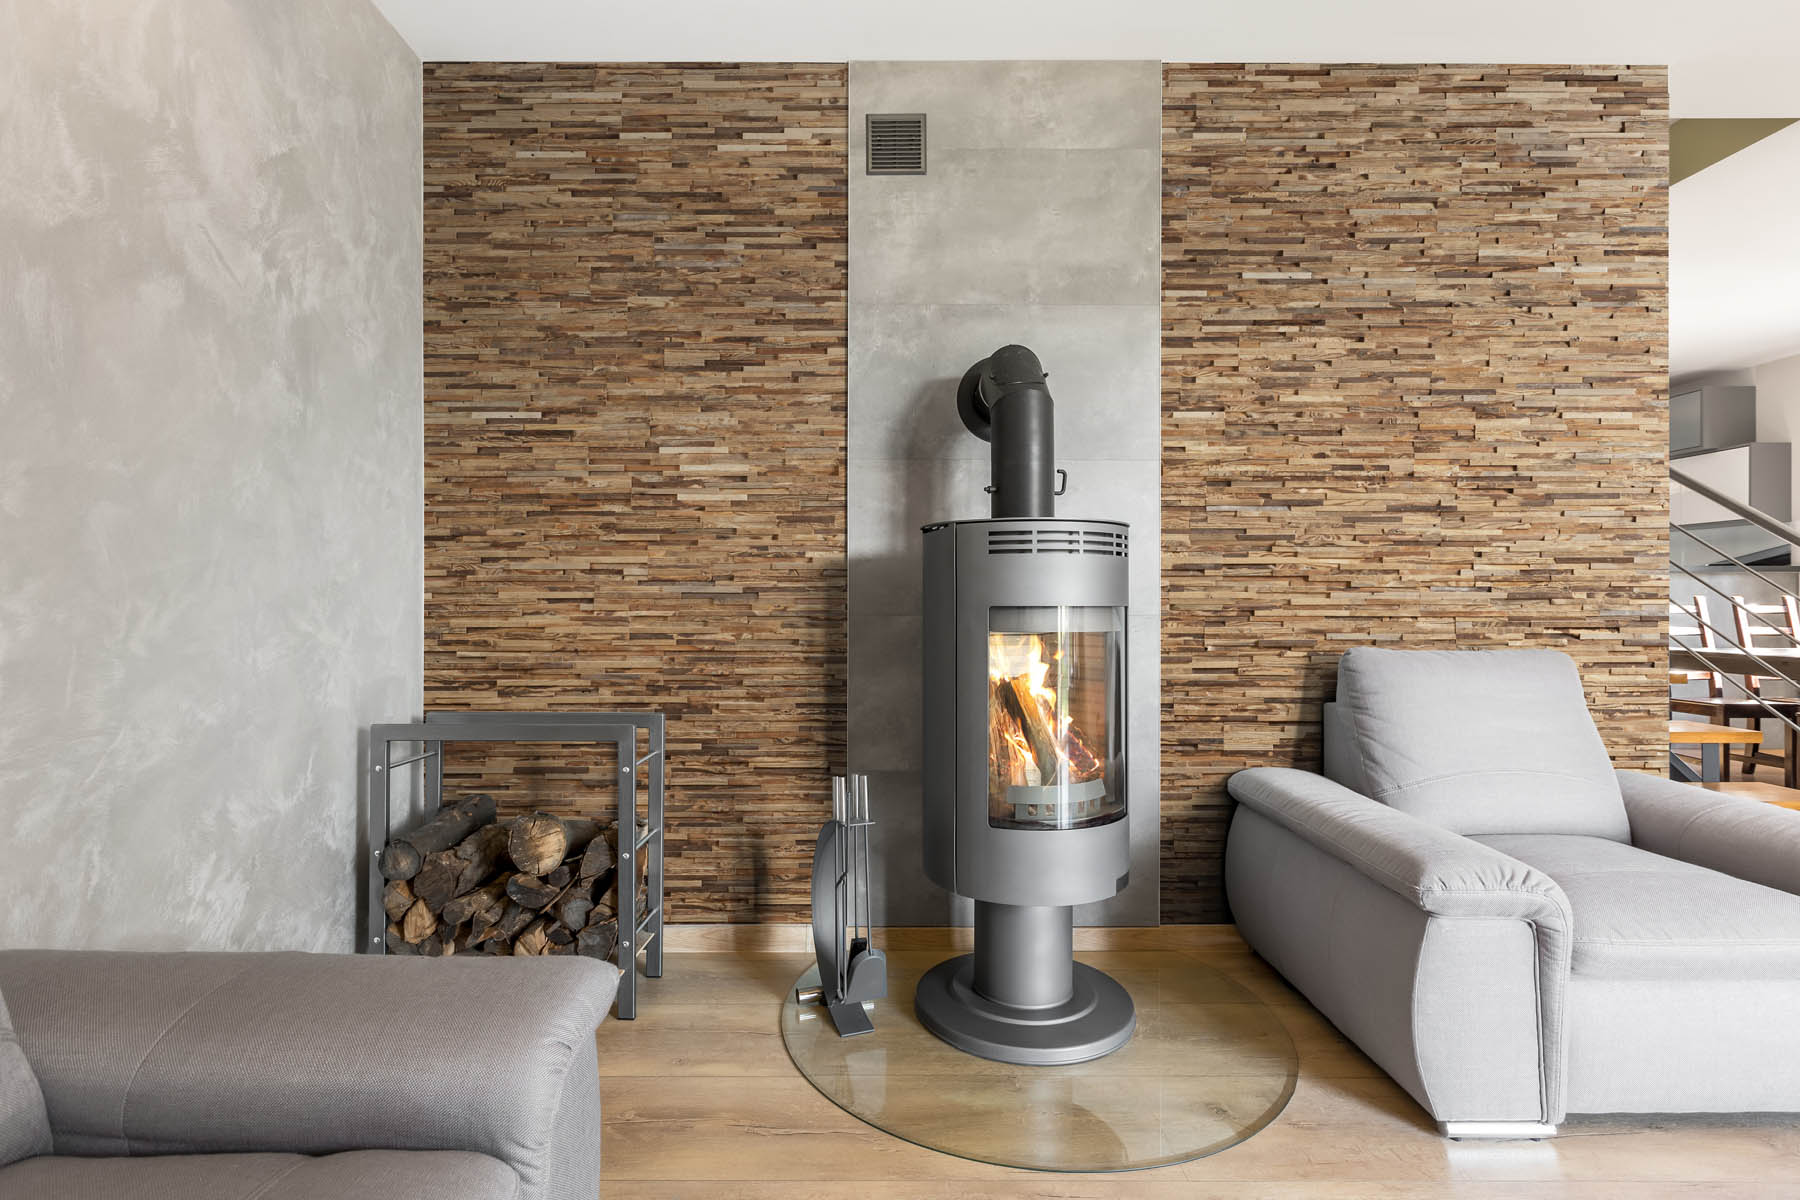 Wall panels in living room with fireplace